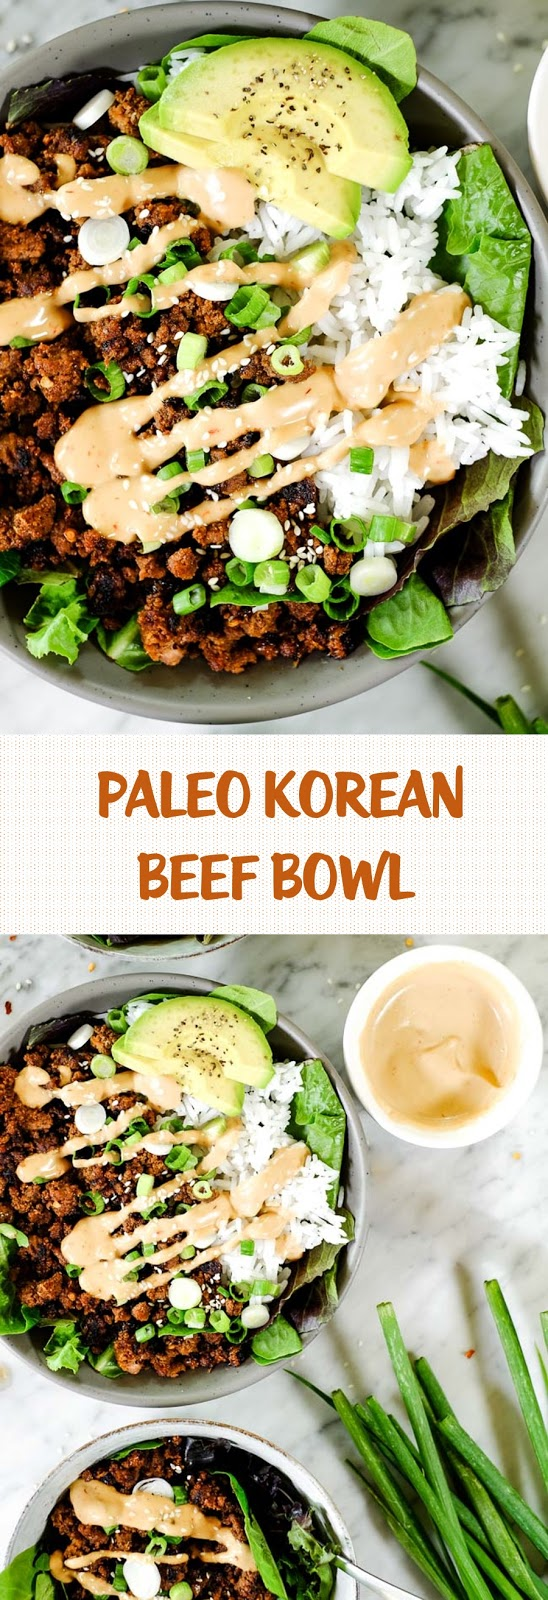 Paleo Korean beef bowl